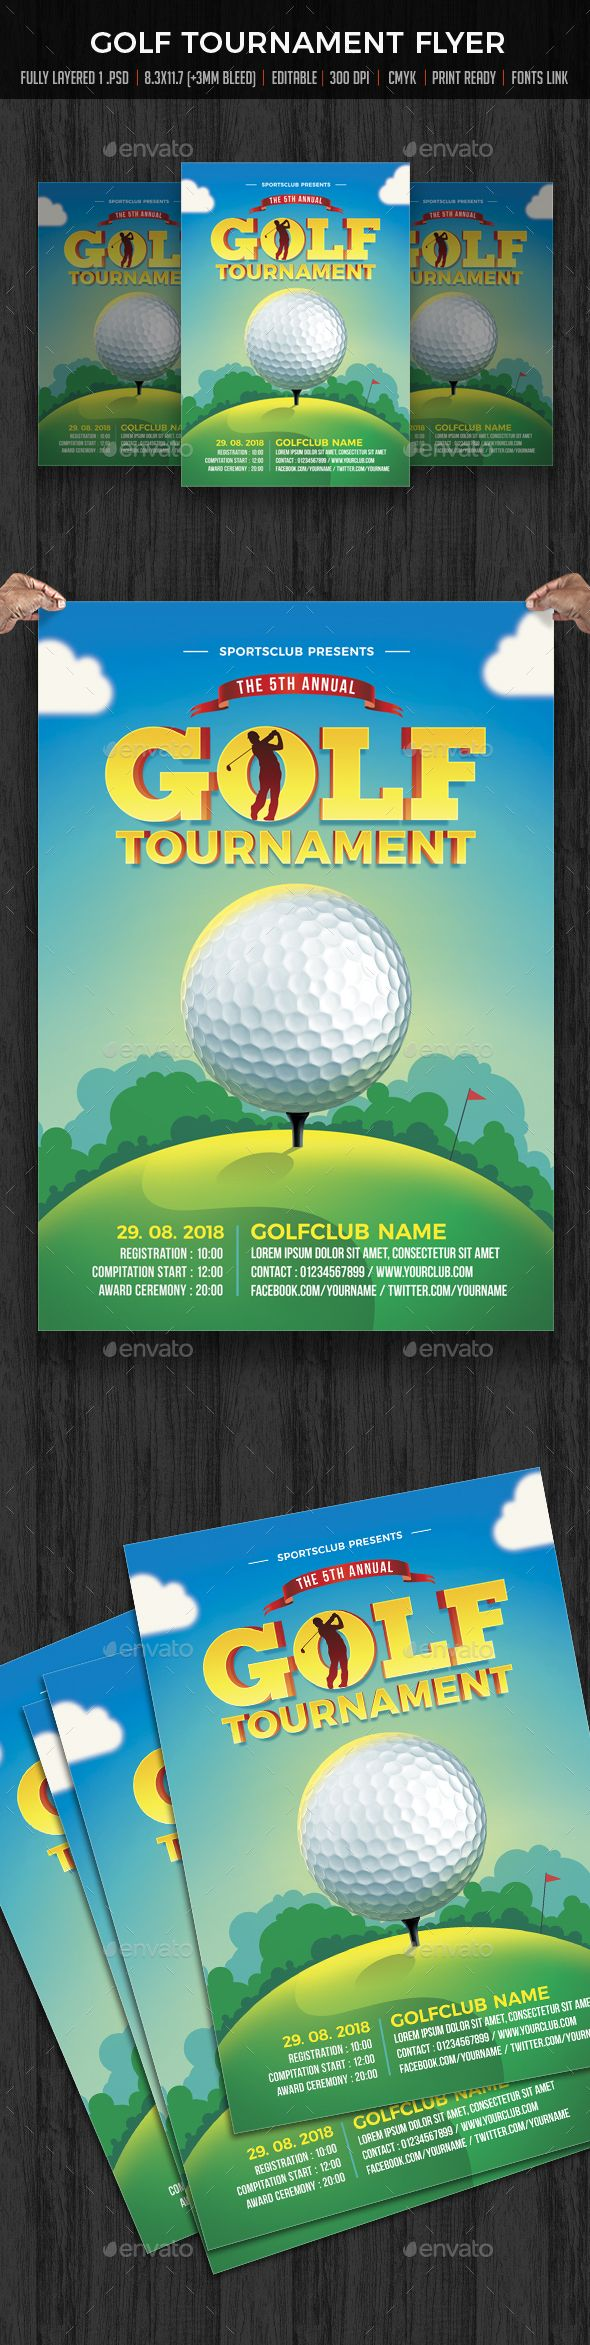 Golf Tournament Flyer  Flyer Template Golf And Template